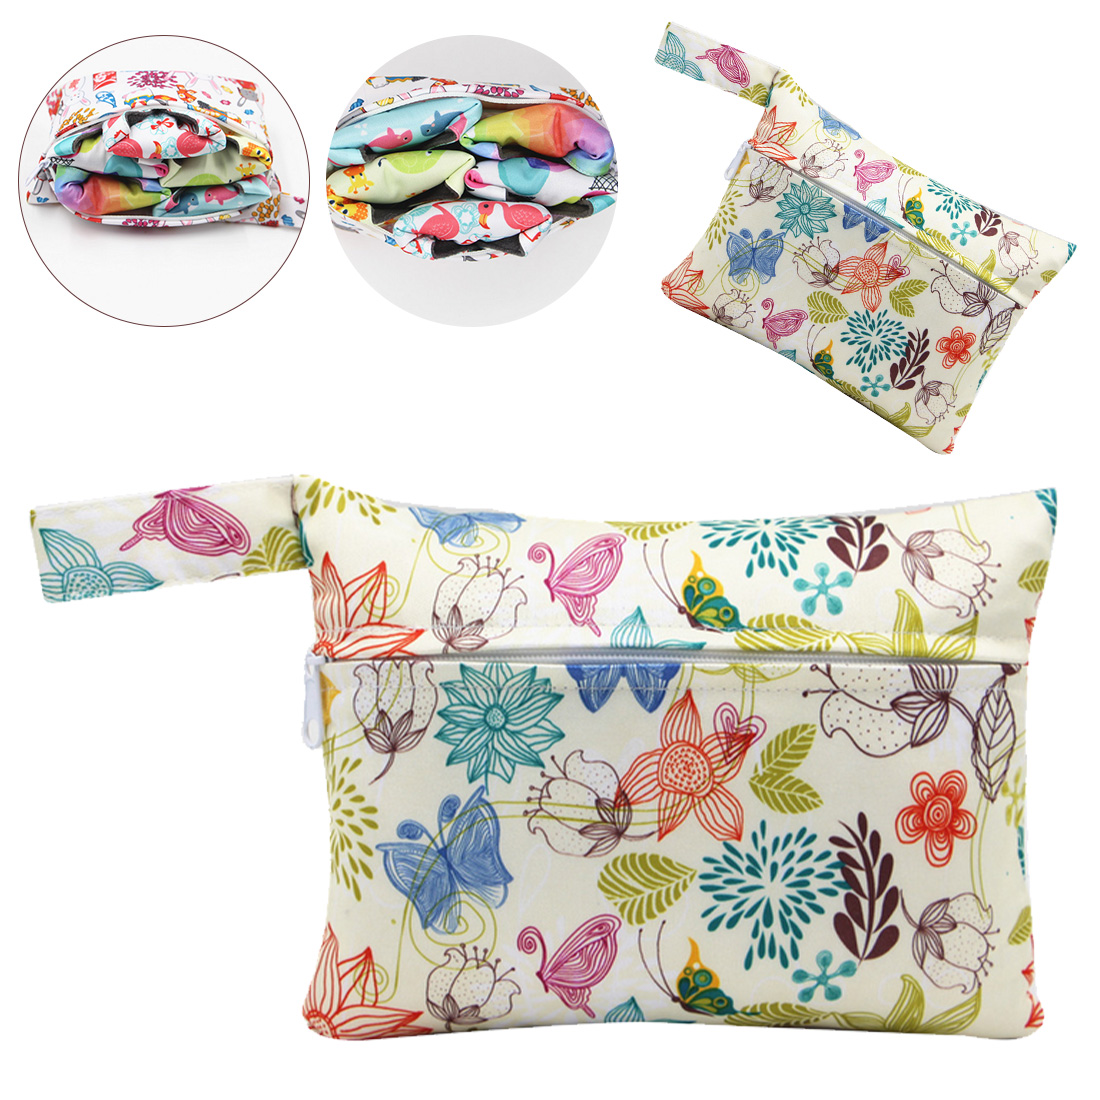 Mini Wet Bag Waterproof Maternity Bag For Menstrual Pads Breast Pad Nursing Pad Reusable Snack Bags 18*14cm